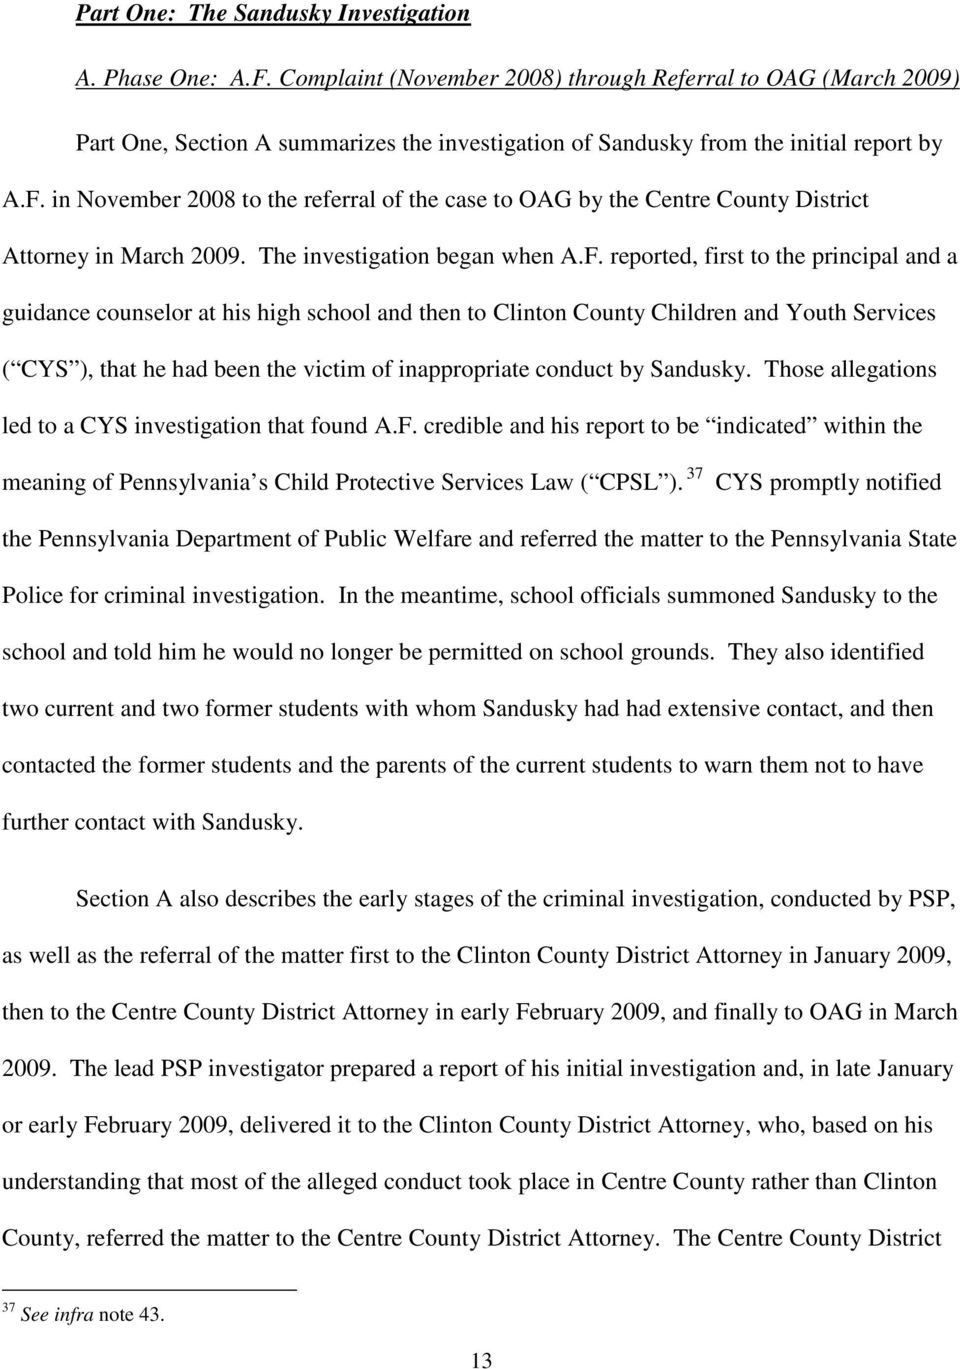 in November 2008 to the referral of the case to OAG by the Centre County District Attorney in March 2009. The investigation began when A.F.